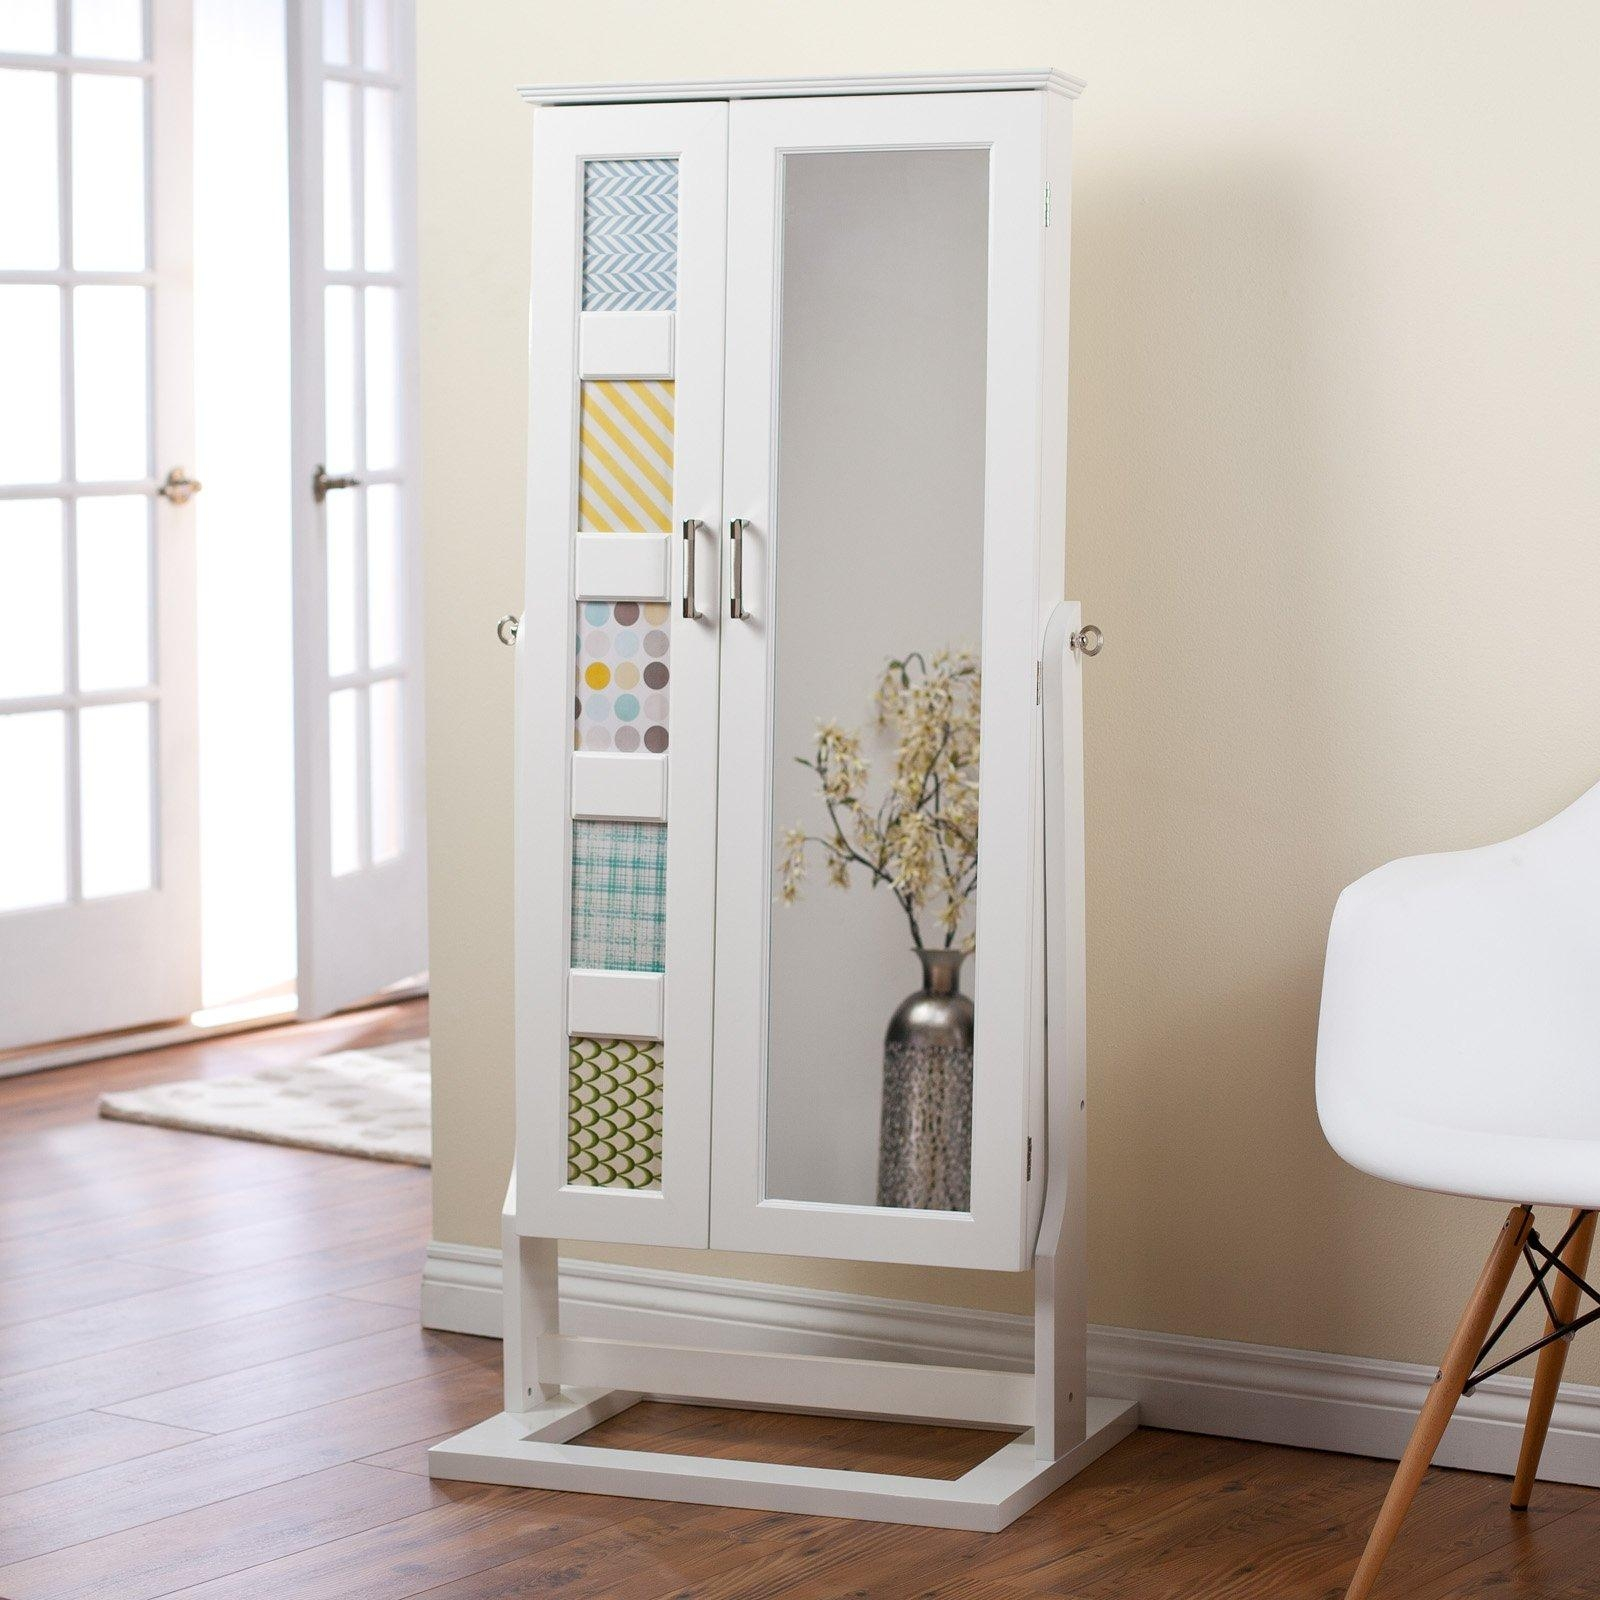 Furniture: Black Jewelry Armoire Mirror On Wooden Floor And Cream Inside Cream Floor Standing Mirror (Image 11 of 20)